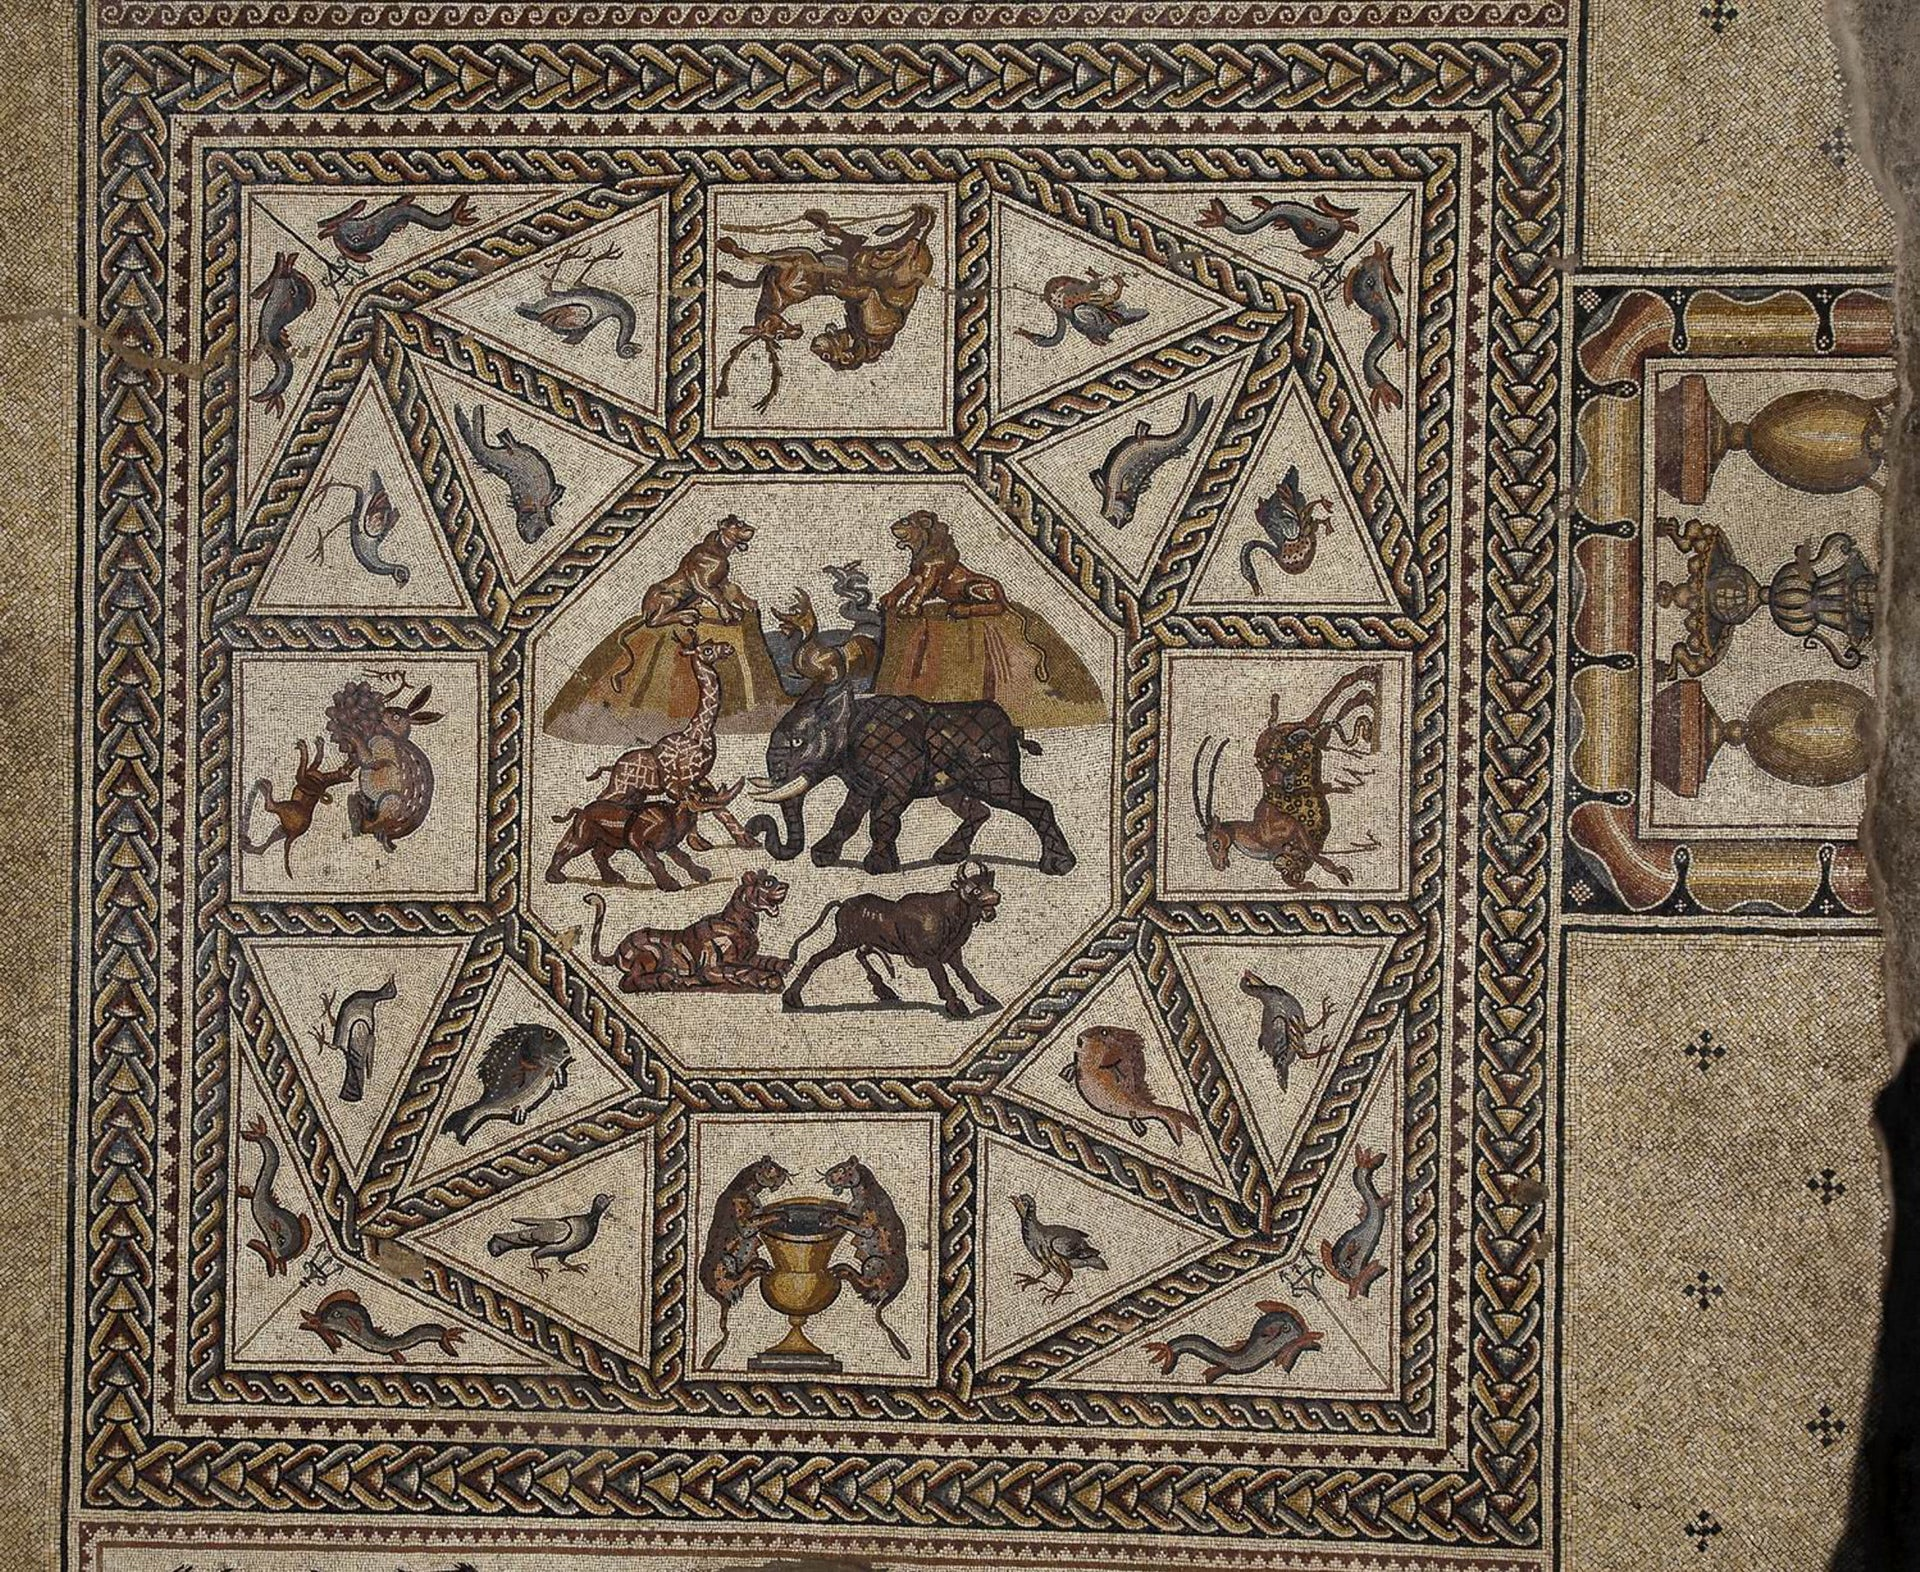 The original Roman mosaic that stunned the world in 1996, Lod